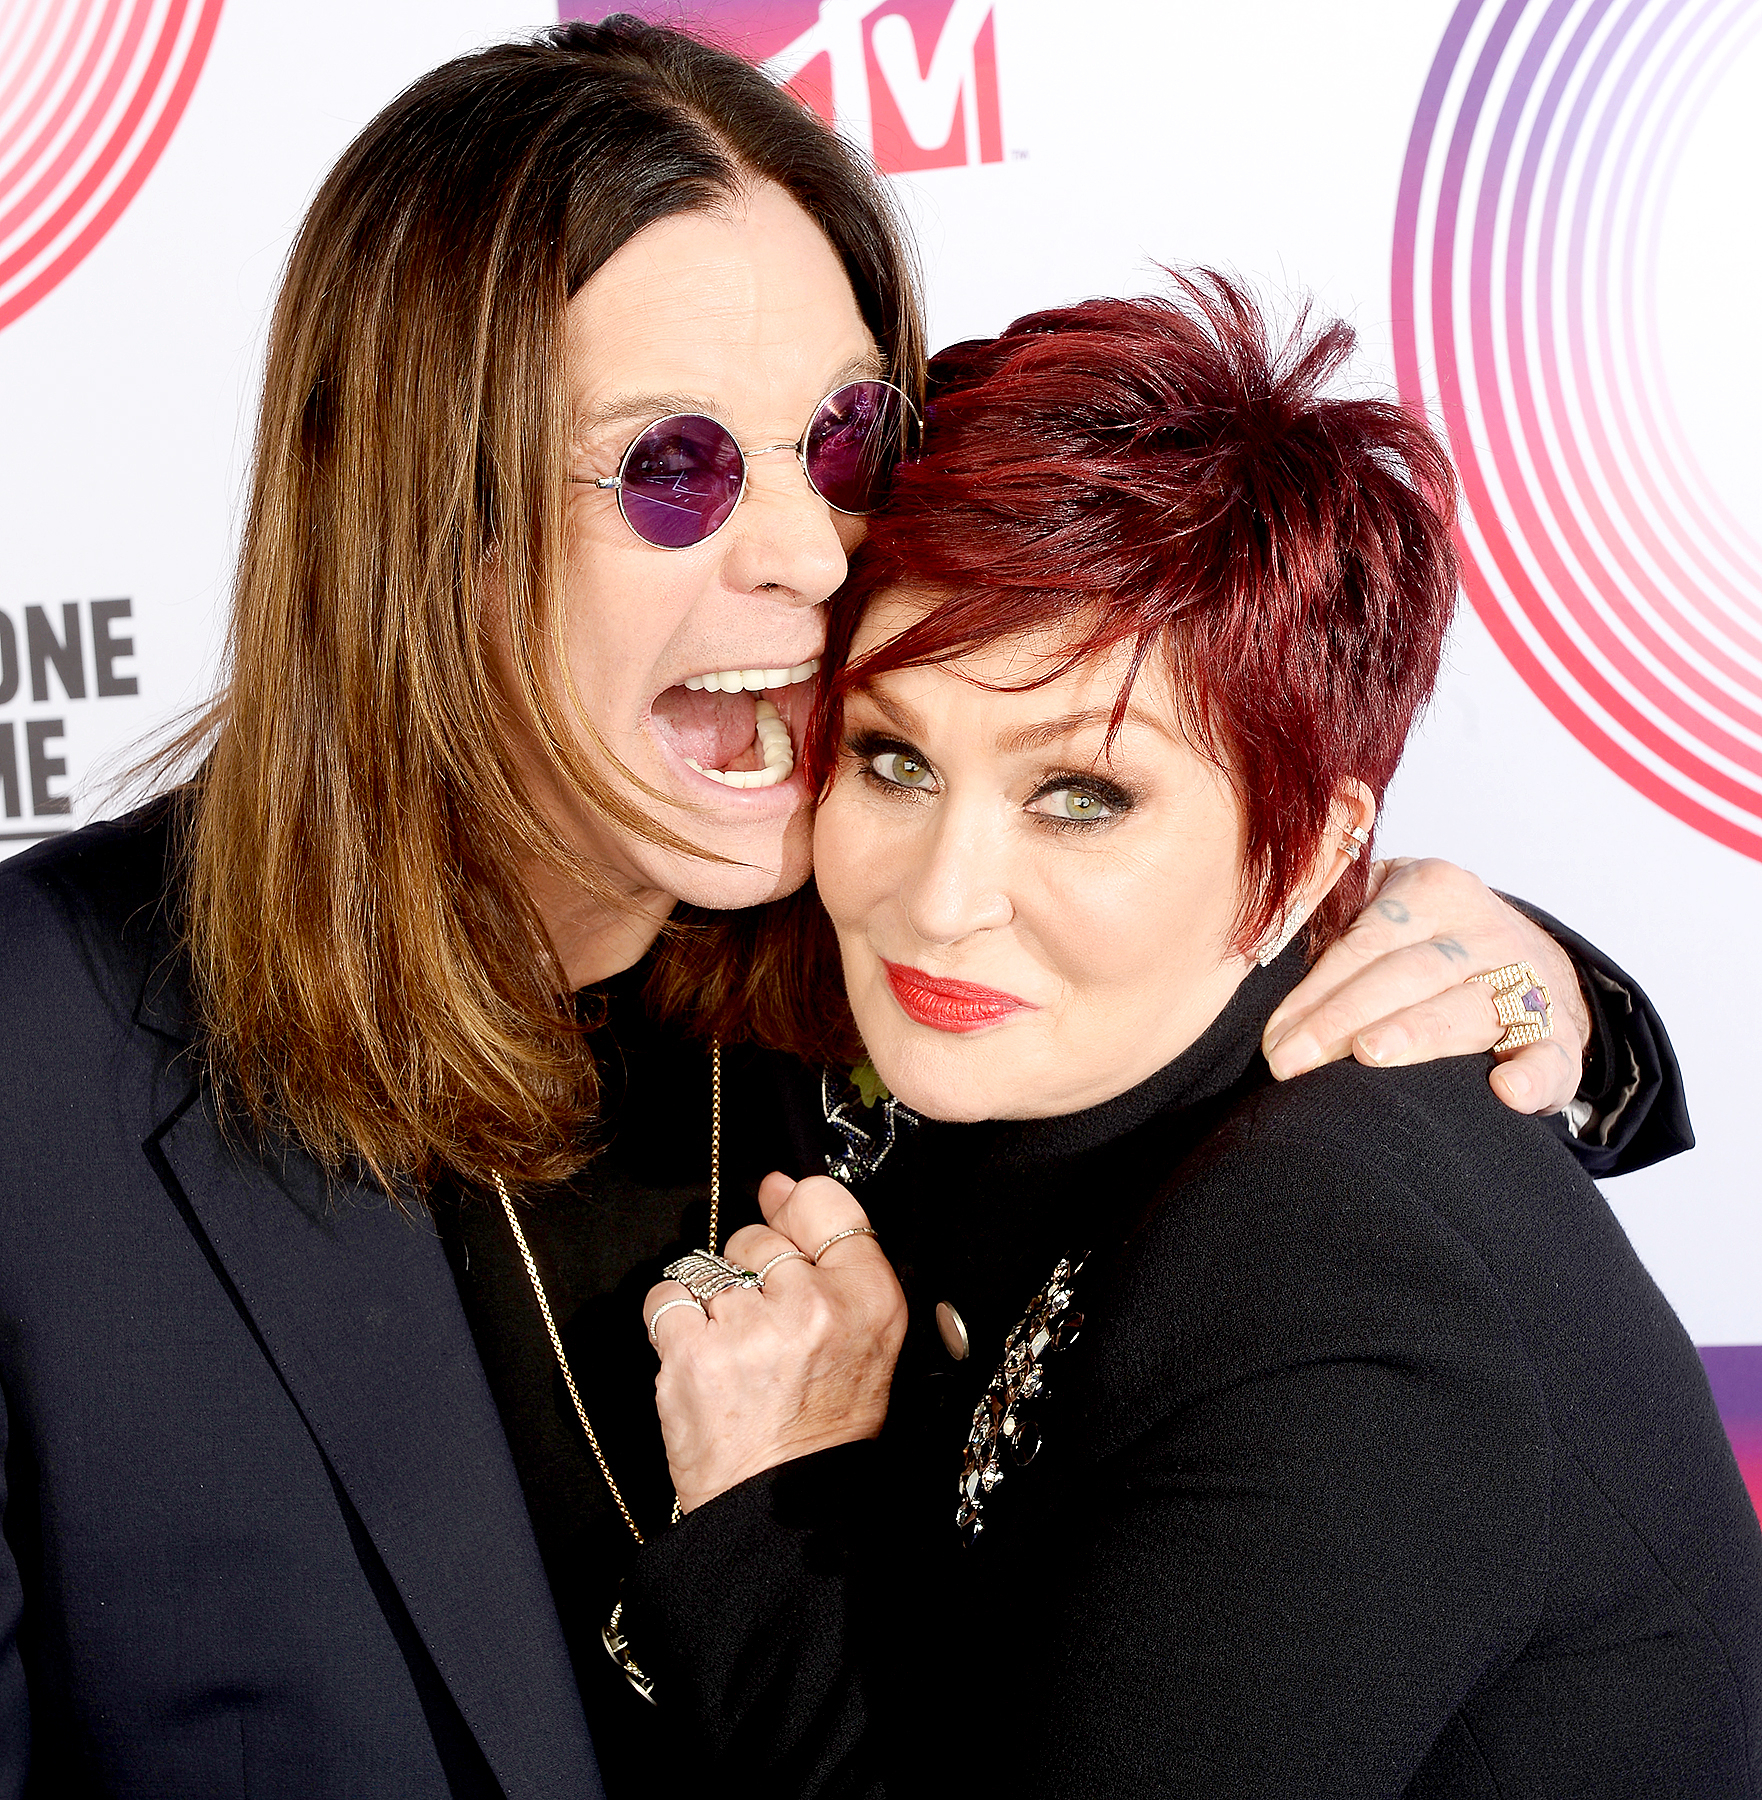 Media: Marriage of Ozzy Osbourne is bursting at the seams because of the changes 08.05.2016 26